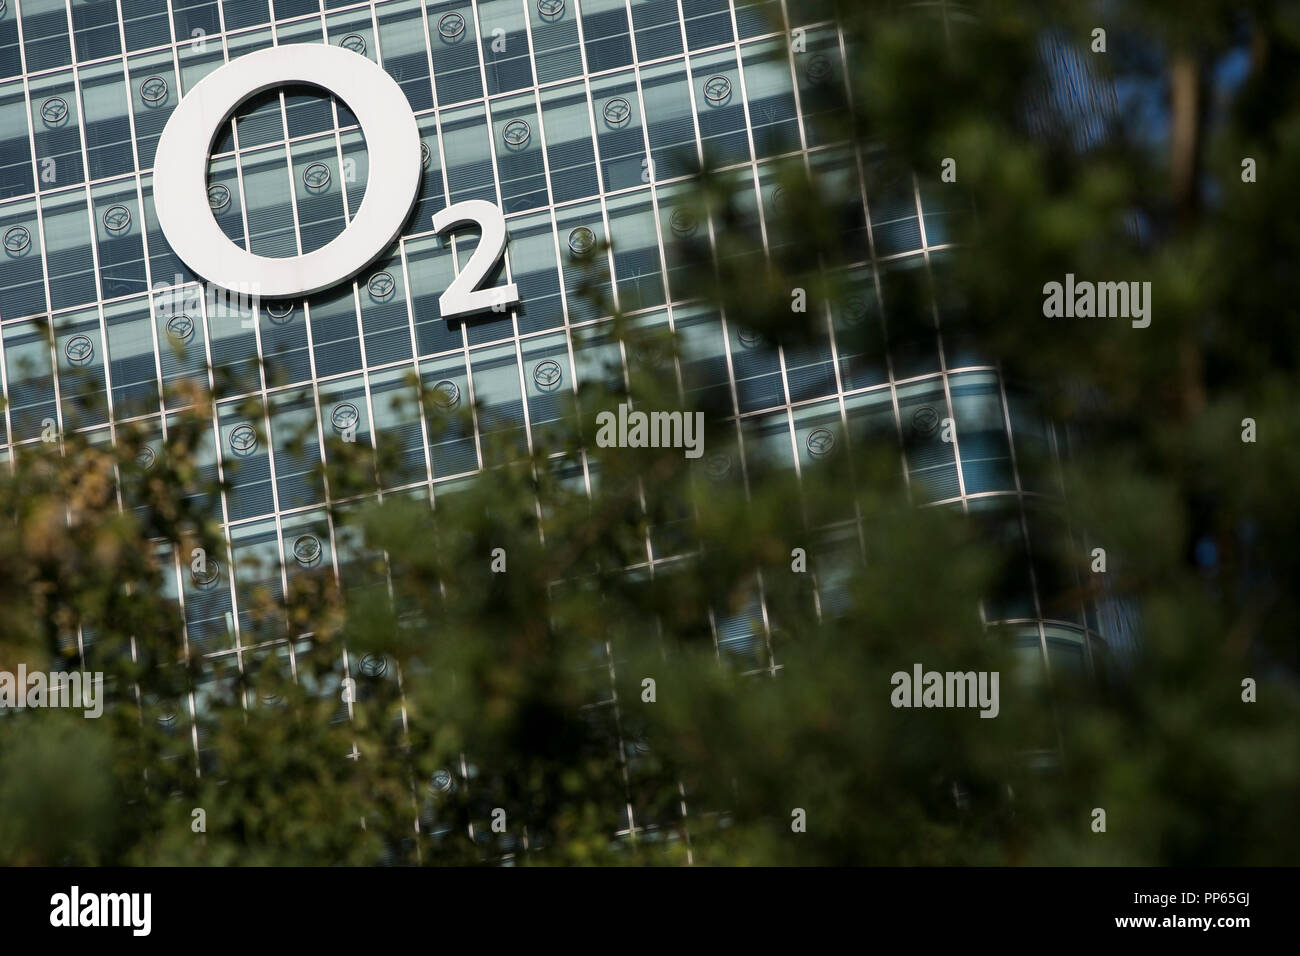 A logo sign outside of a facility occupied by Telefónica Europe (O2) in Munich, Germany, on September 8, 2018. - Stock Image